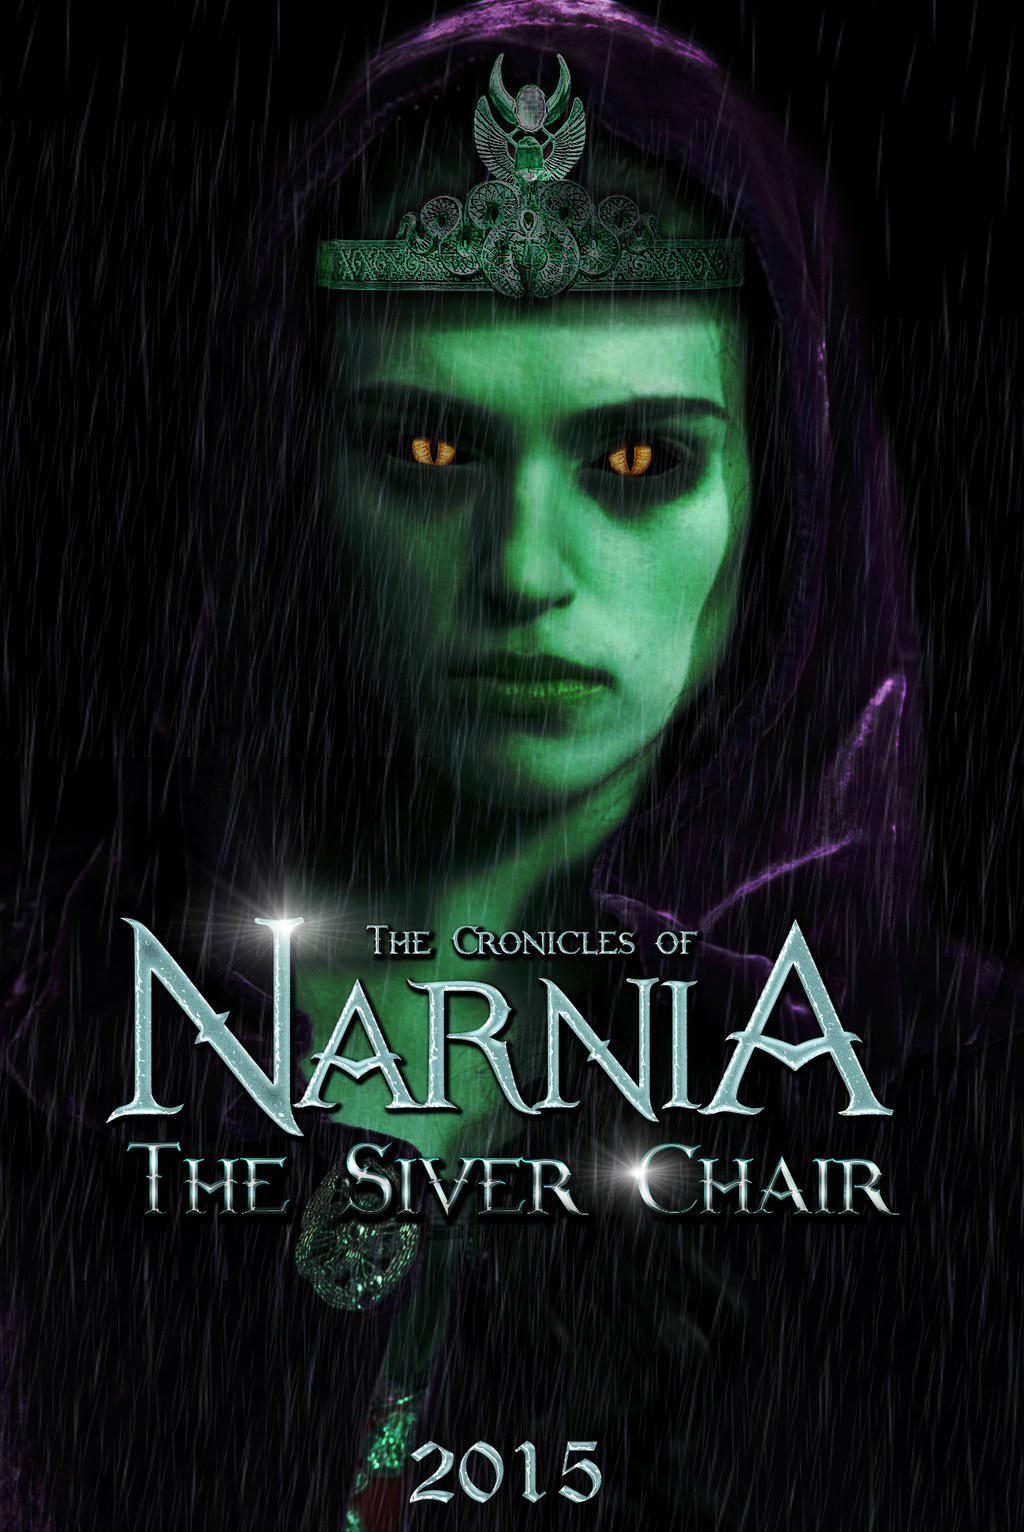 Chronicles of Narnia The silver chair 2015 by lagrie